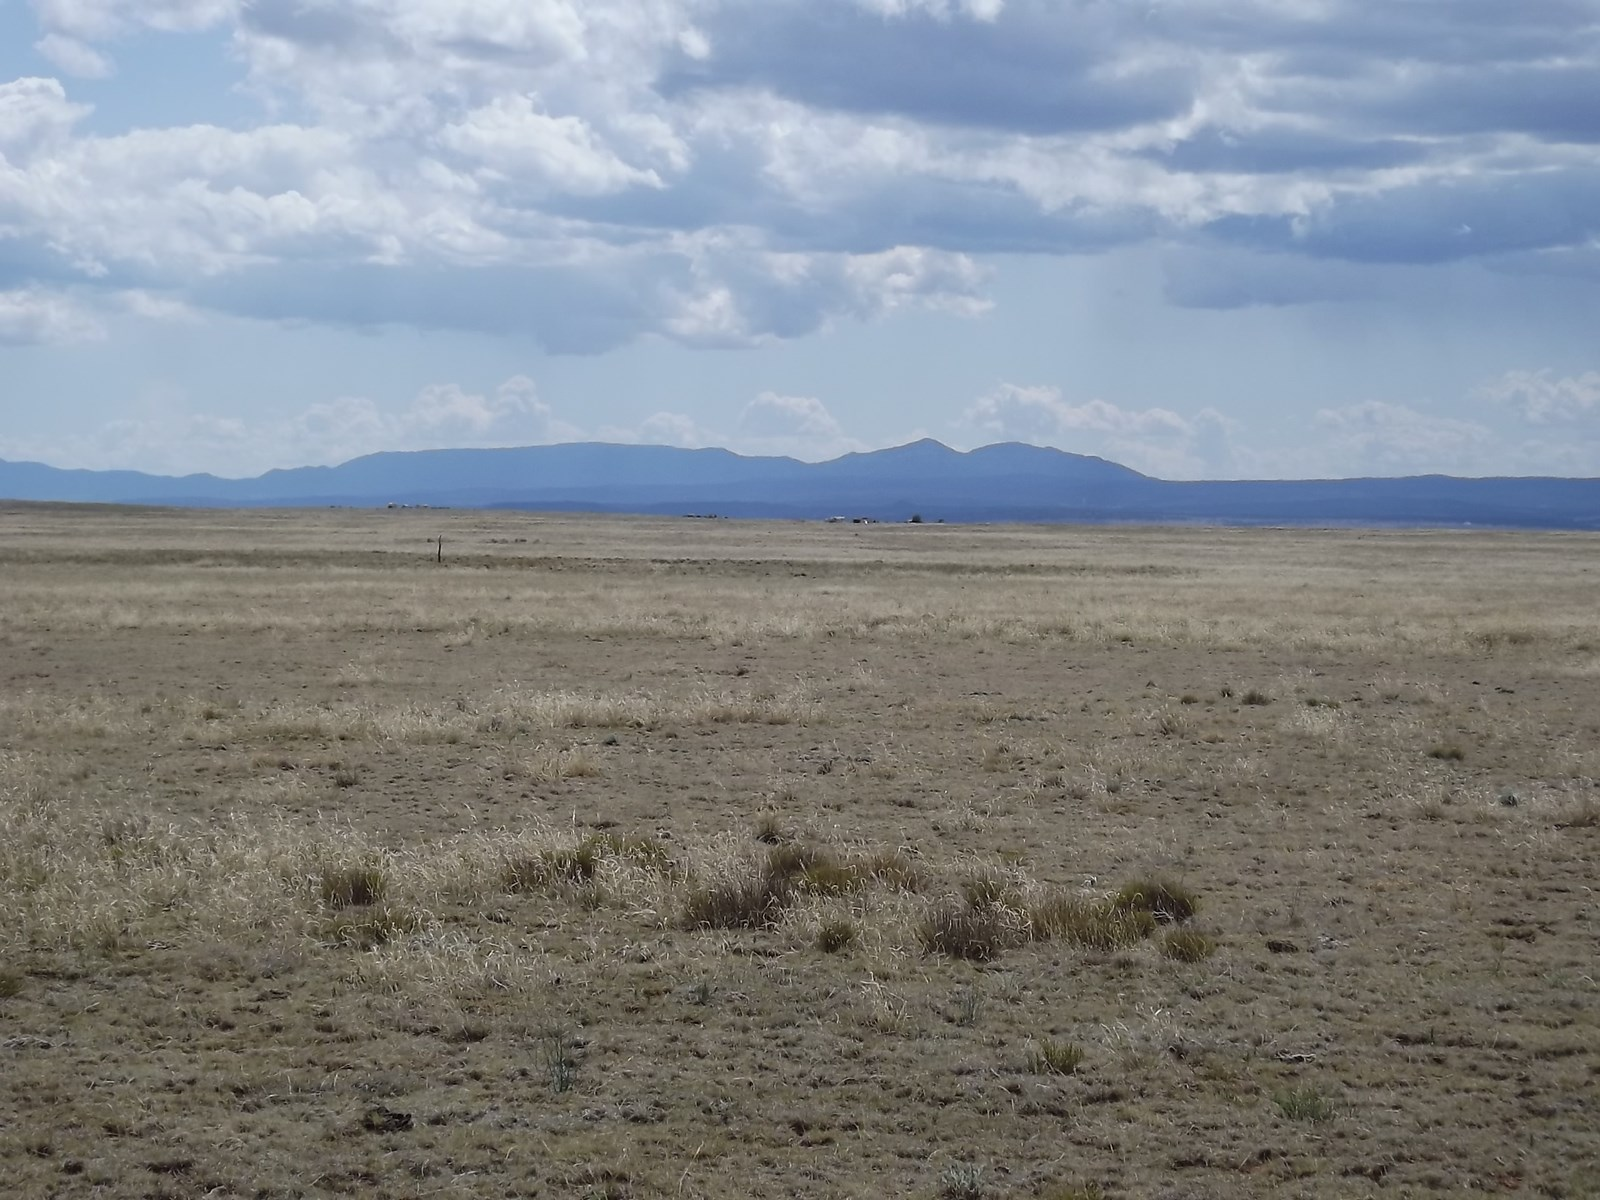 1,040 Acres Pasture Grassland For Sale Near Moriarty NM